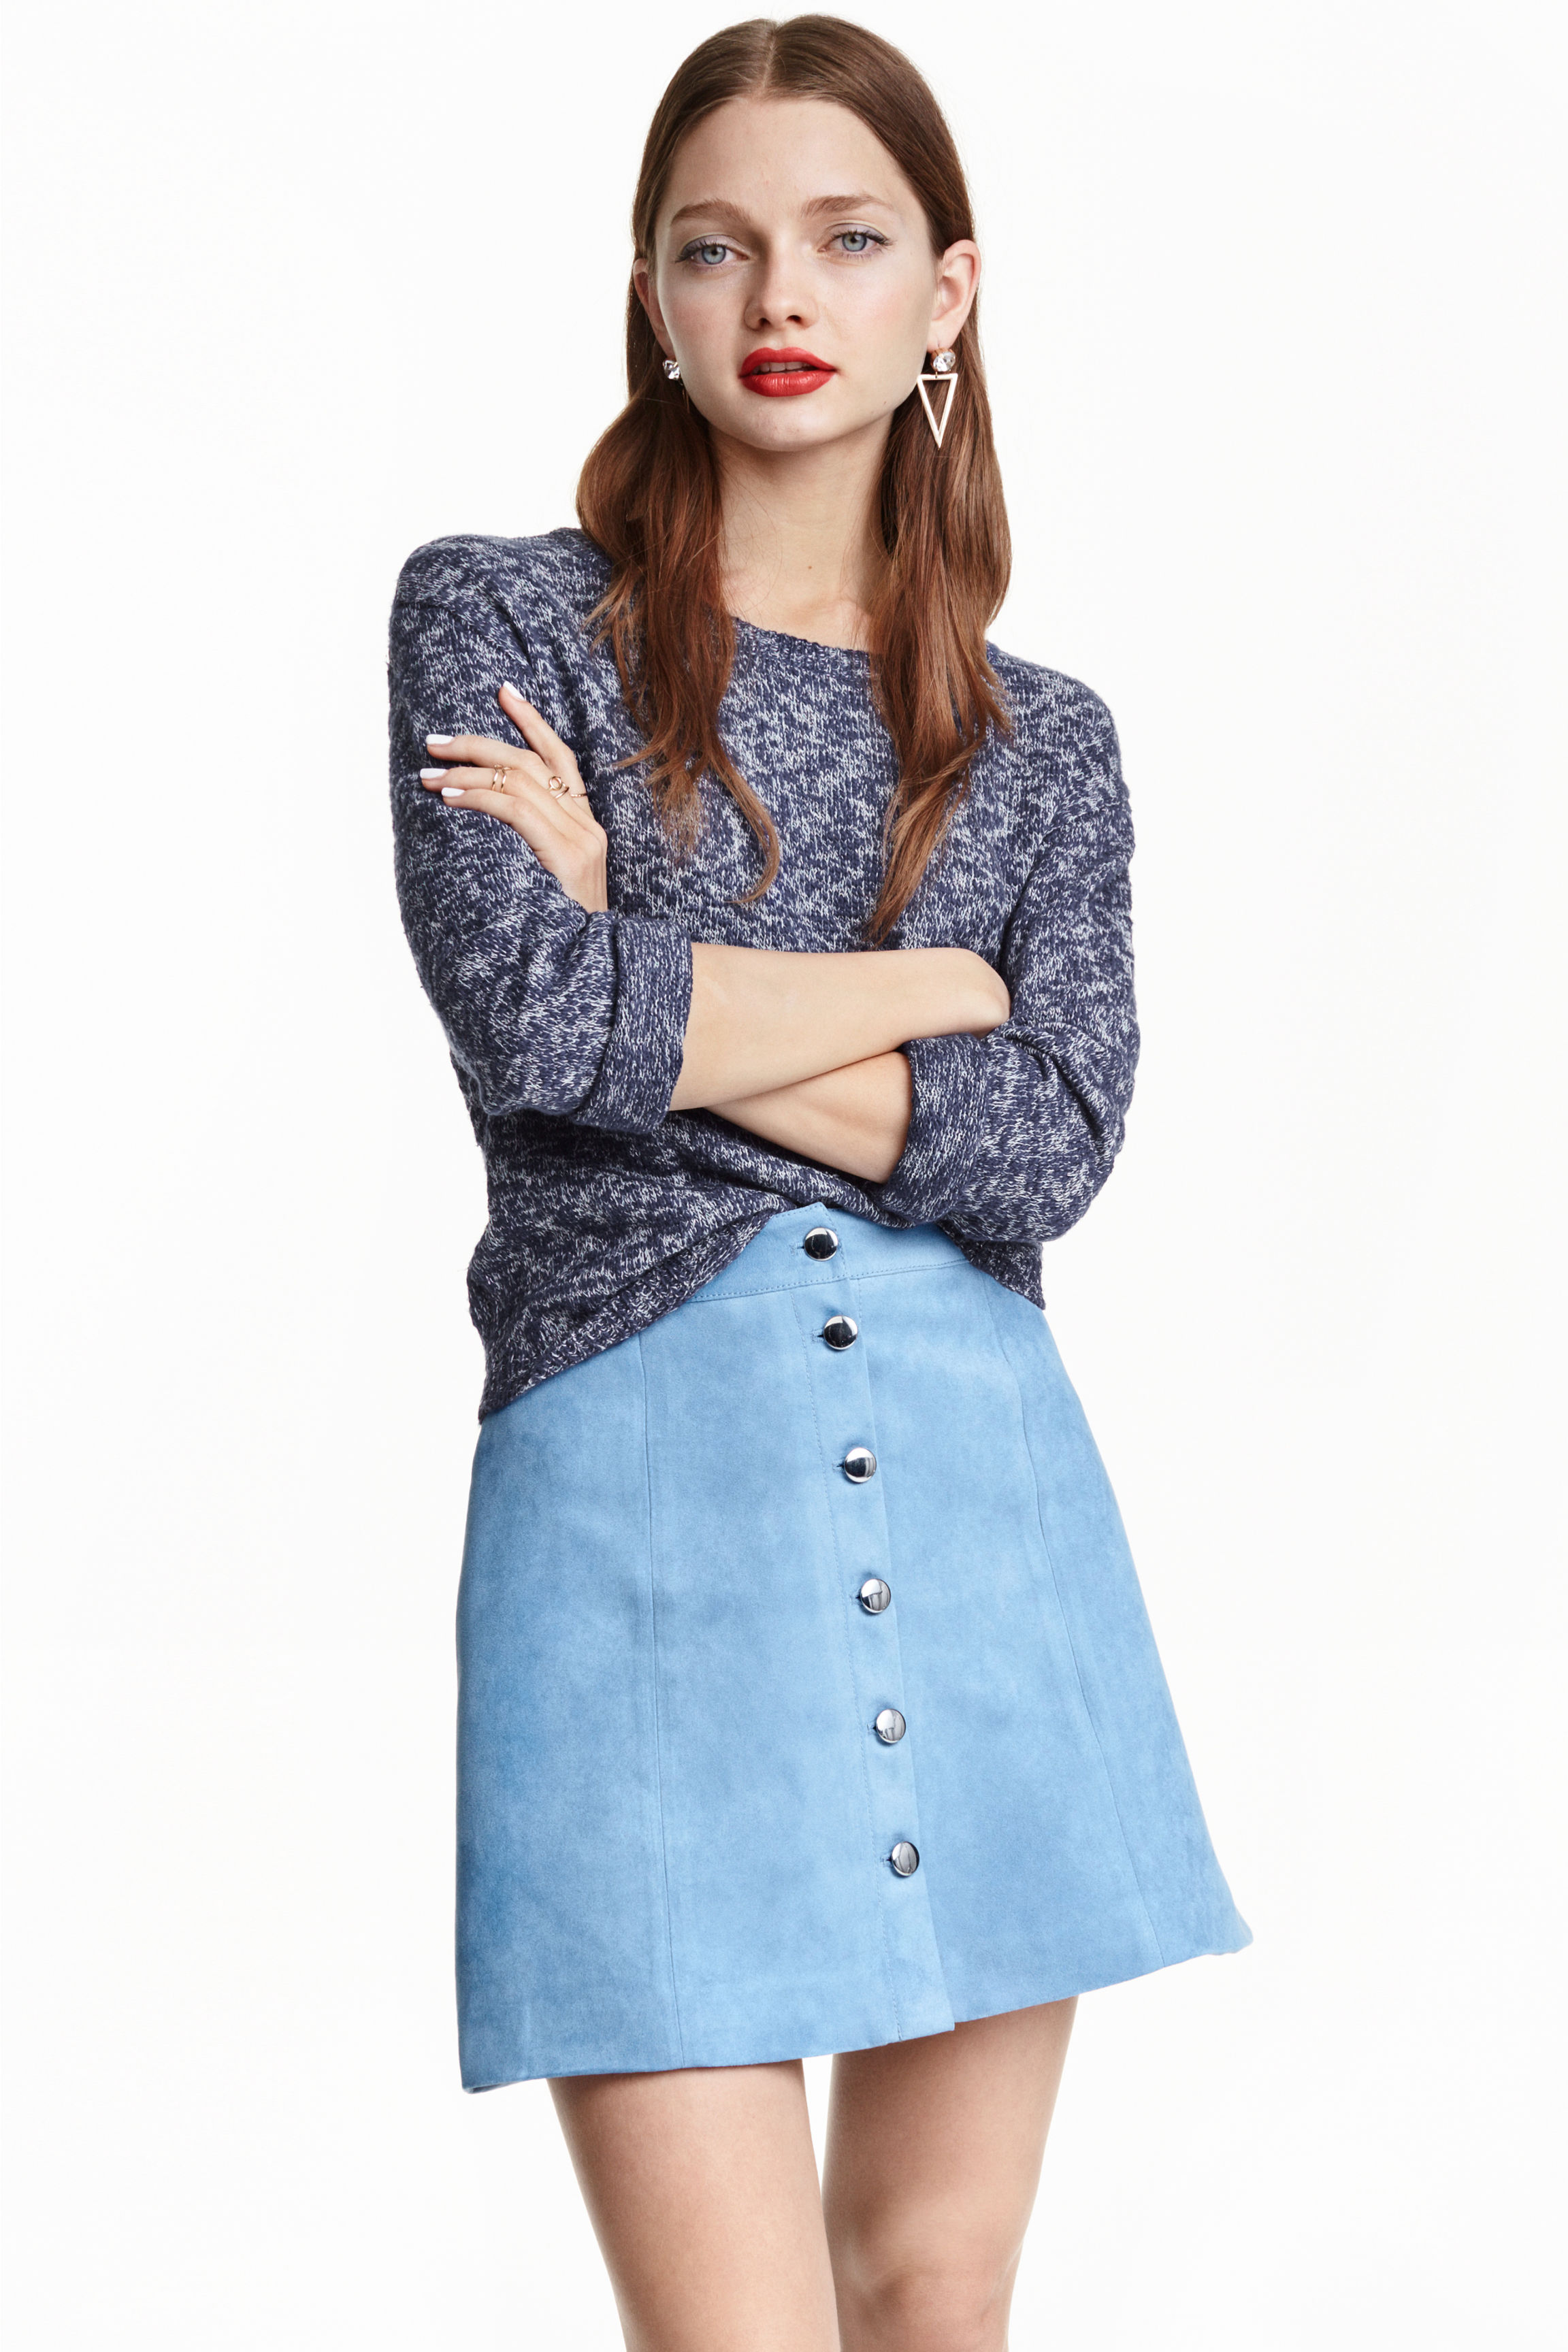 A-line skirt - Denim blue - Ladies | H&M GB